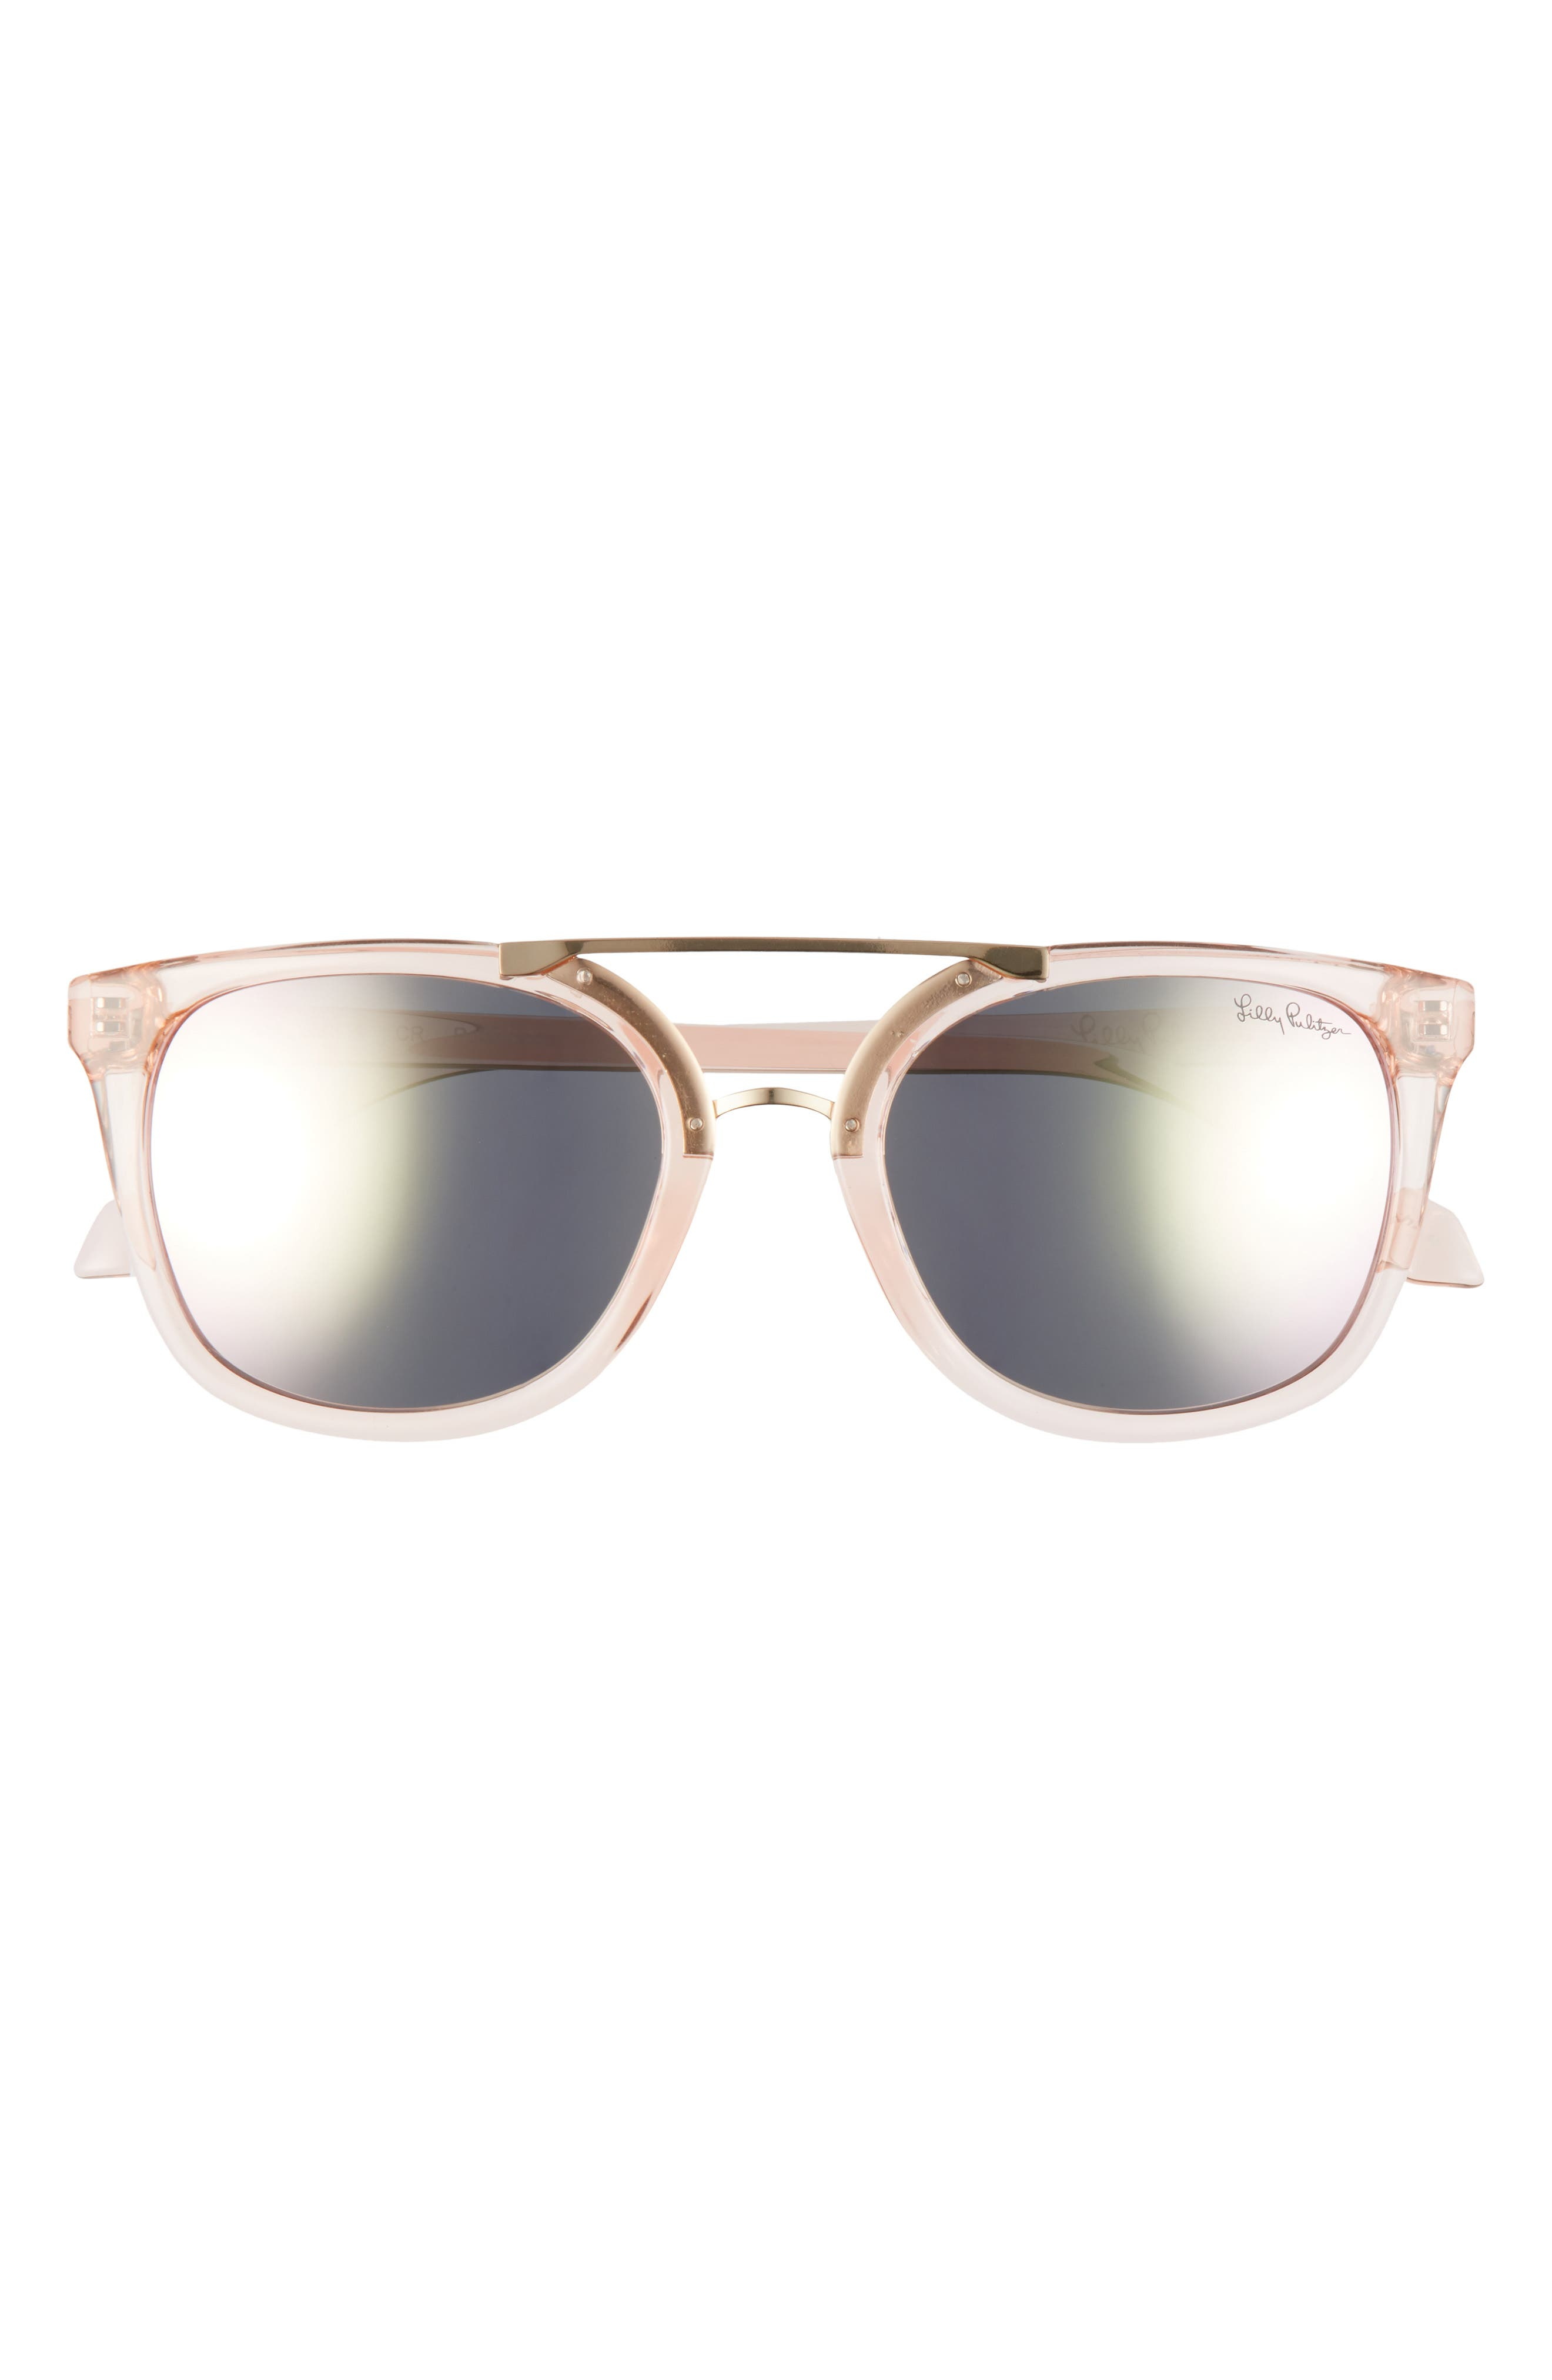 A metal aviator bridge styles sleek sunnies finished with cool polarized lenses and logo-detailed temples. Style Name: Lilly Pulitzer Emilia 53mm Polarized Sunglasses. Style Number: 5567250. Available in stores.